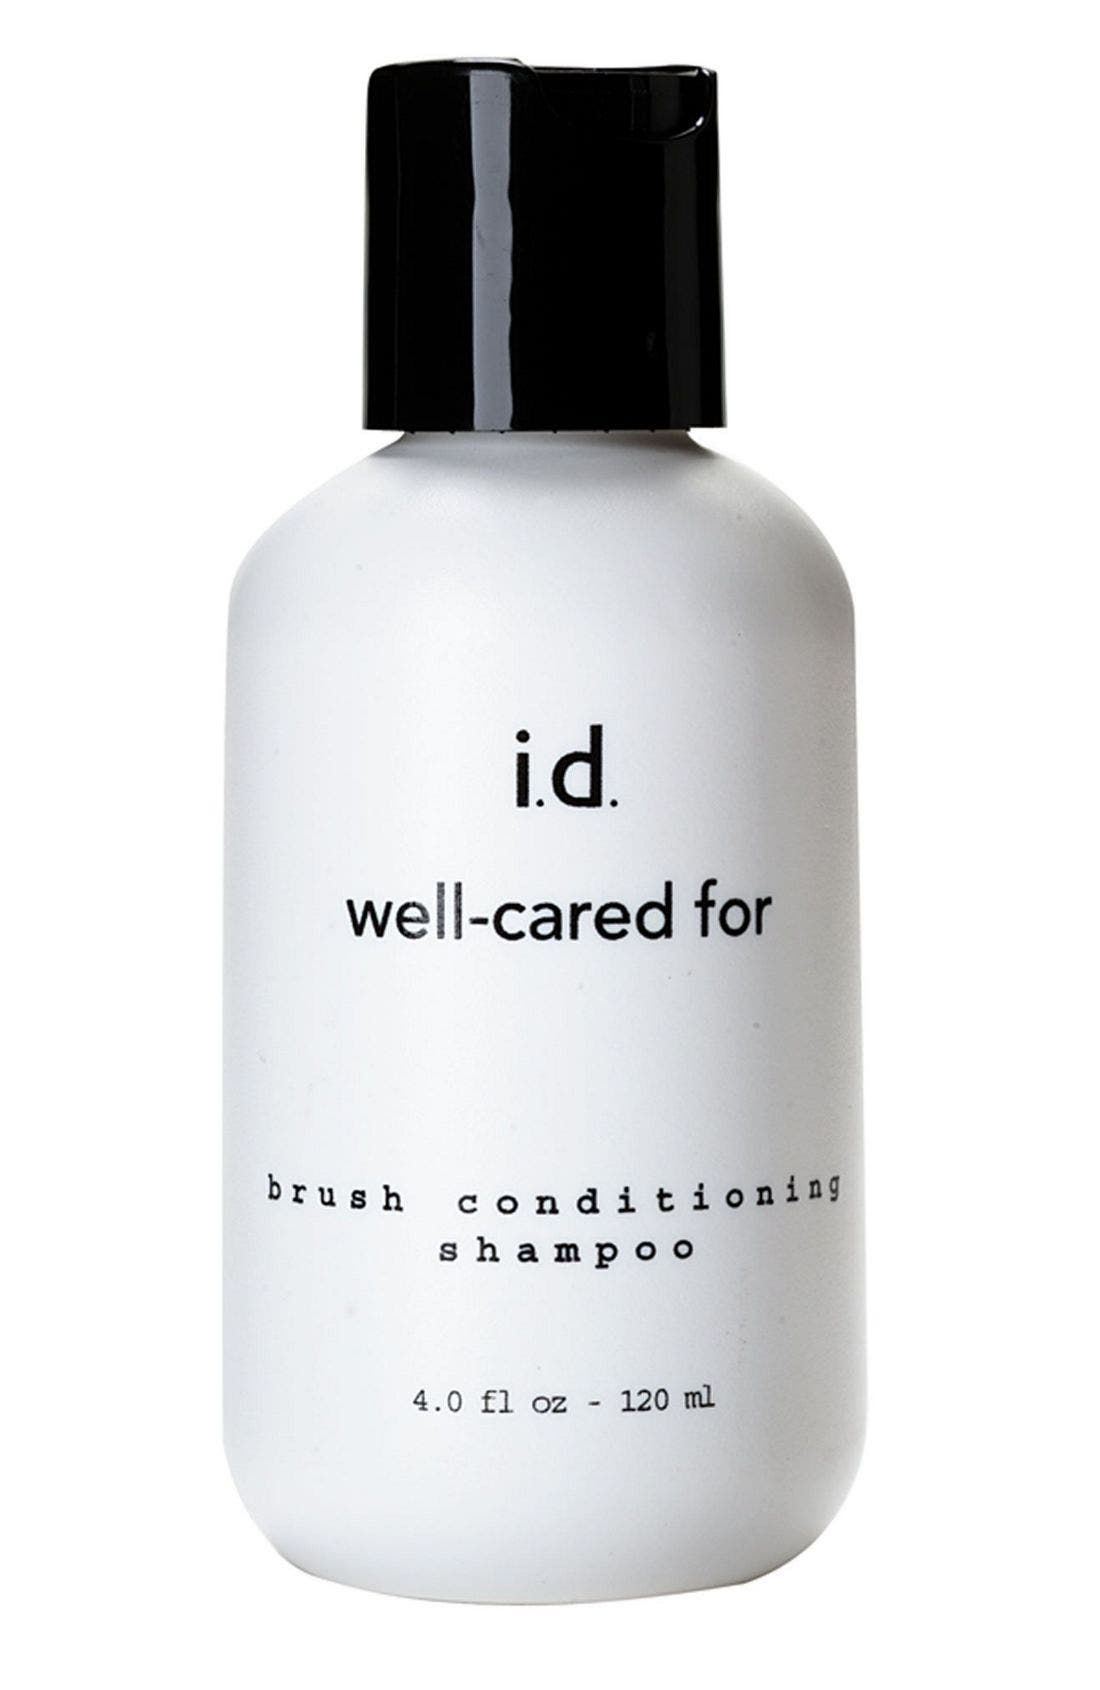 Well-Cared For Brush Conditioning Shampoo,                             Main thumbnail 1, color,                             NO COLOR